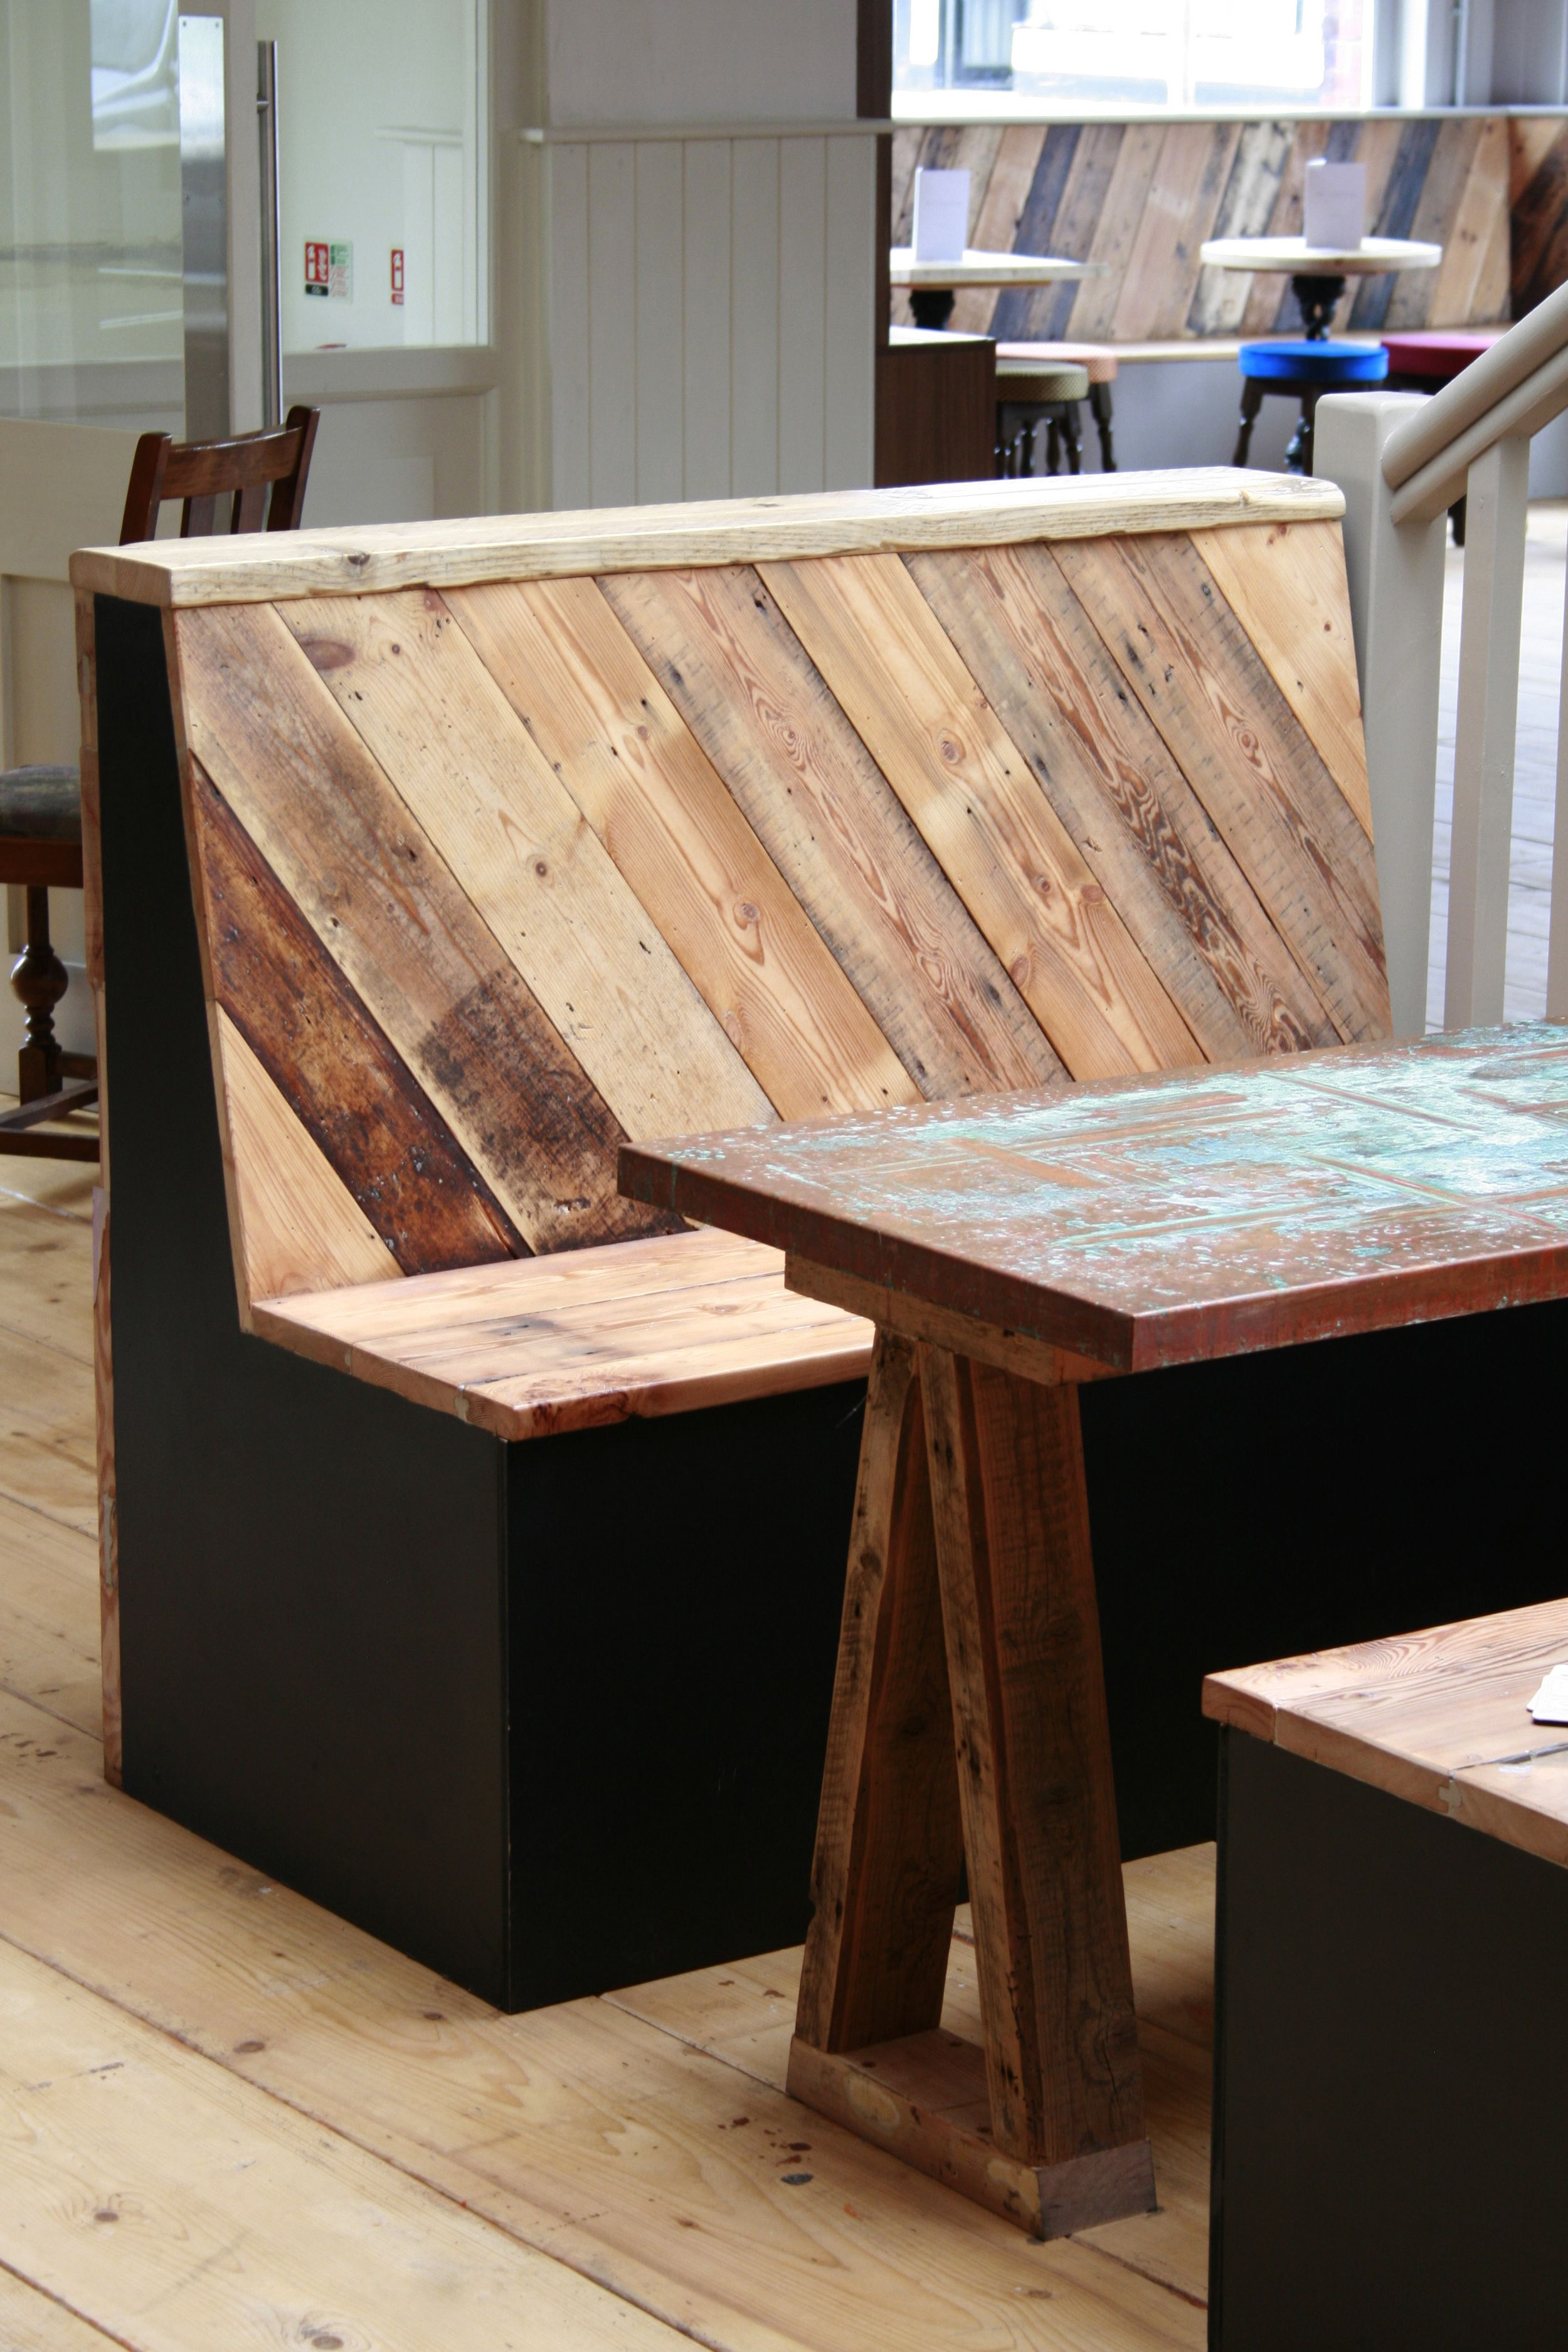 Reclaimed Wood Booth Seating Google Search Booth Seating Restaurant Seating Banquette Seating